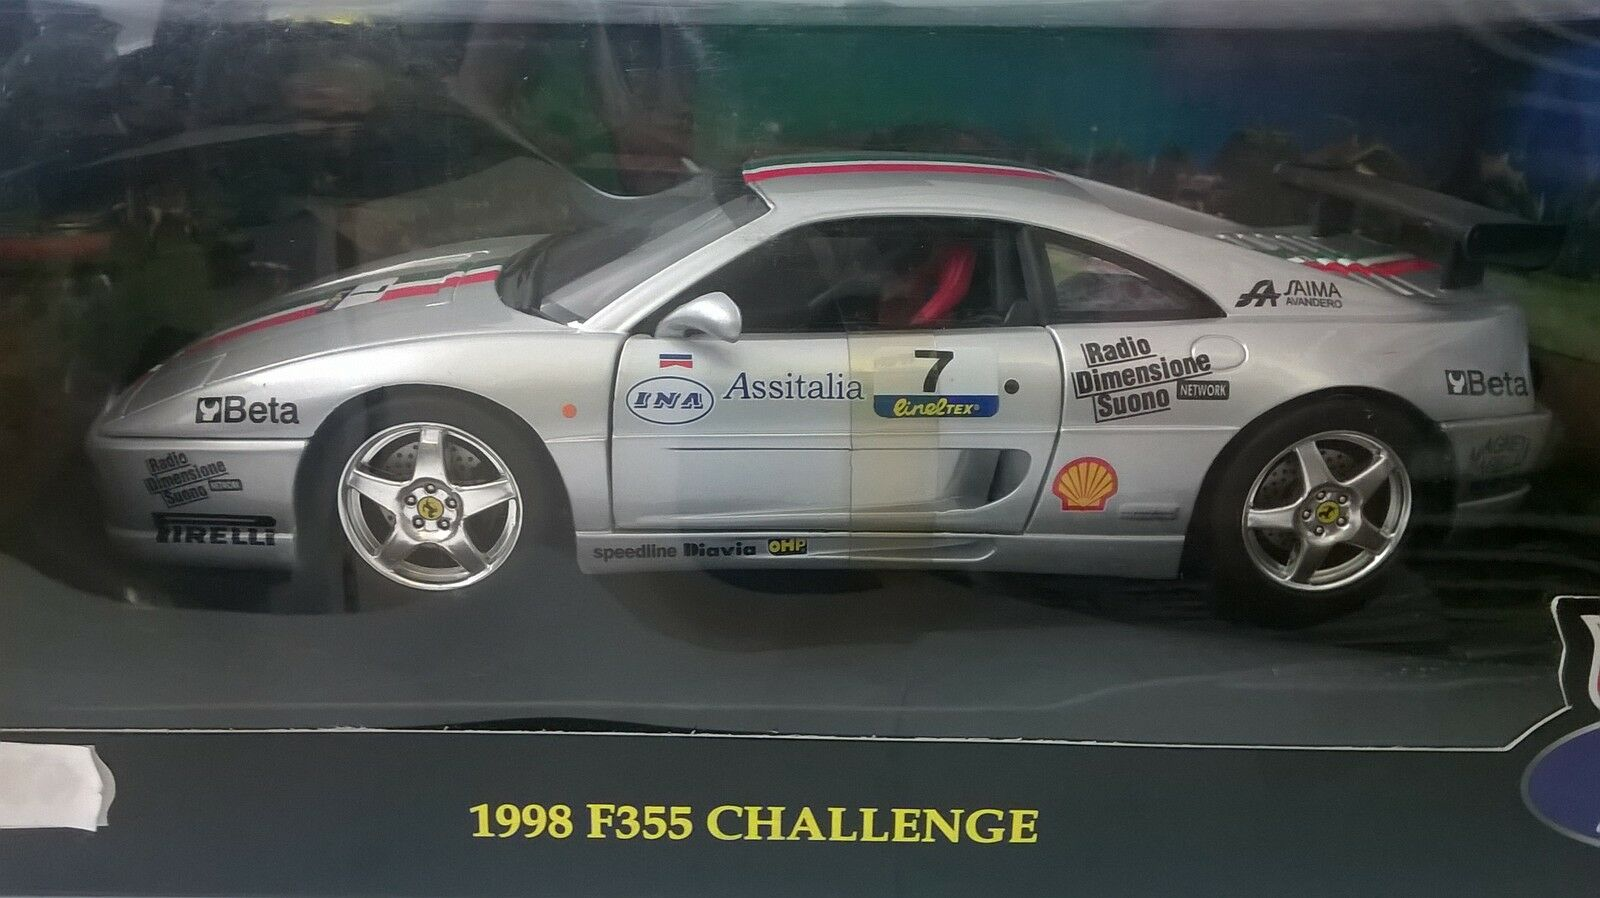 HOT WHEELS 1 1 1 18 FOUNDATION AUTO DIE CAST FERRARI F355 1998 CHALLENGE   ART 23909 b5d5b6